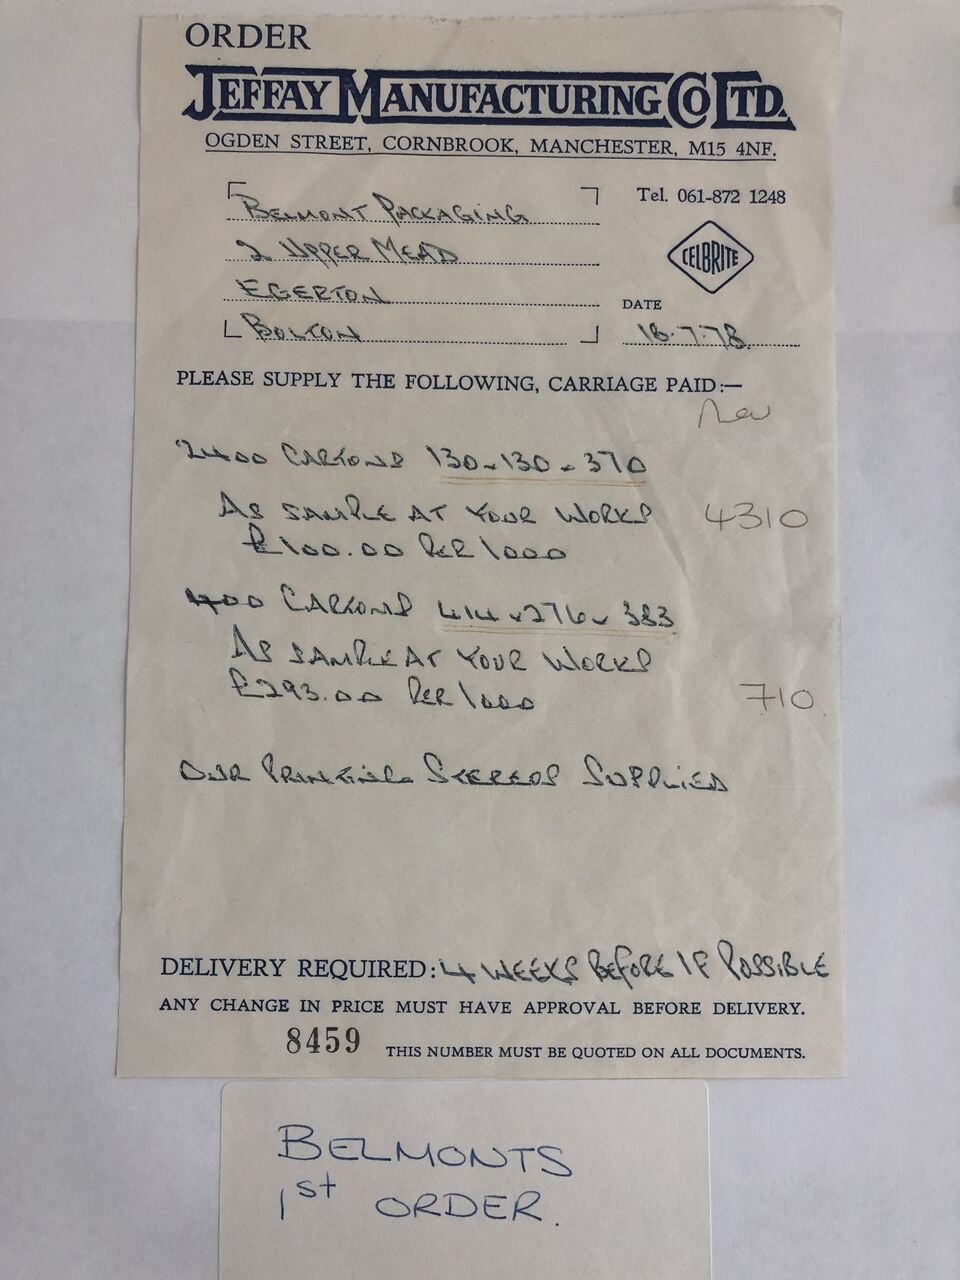 Belmont Packaging's 1st Order in 1978